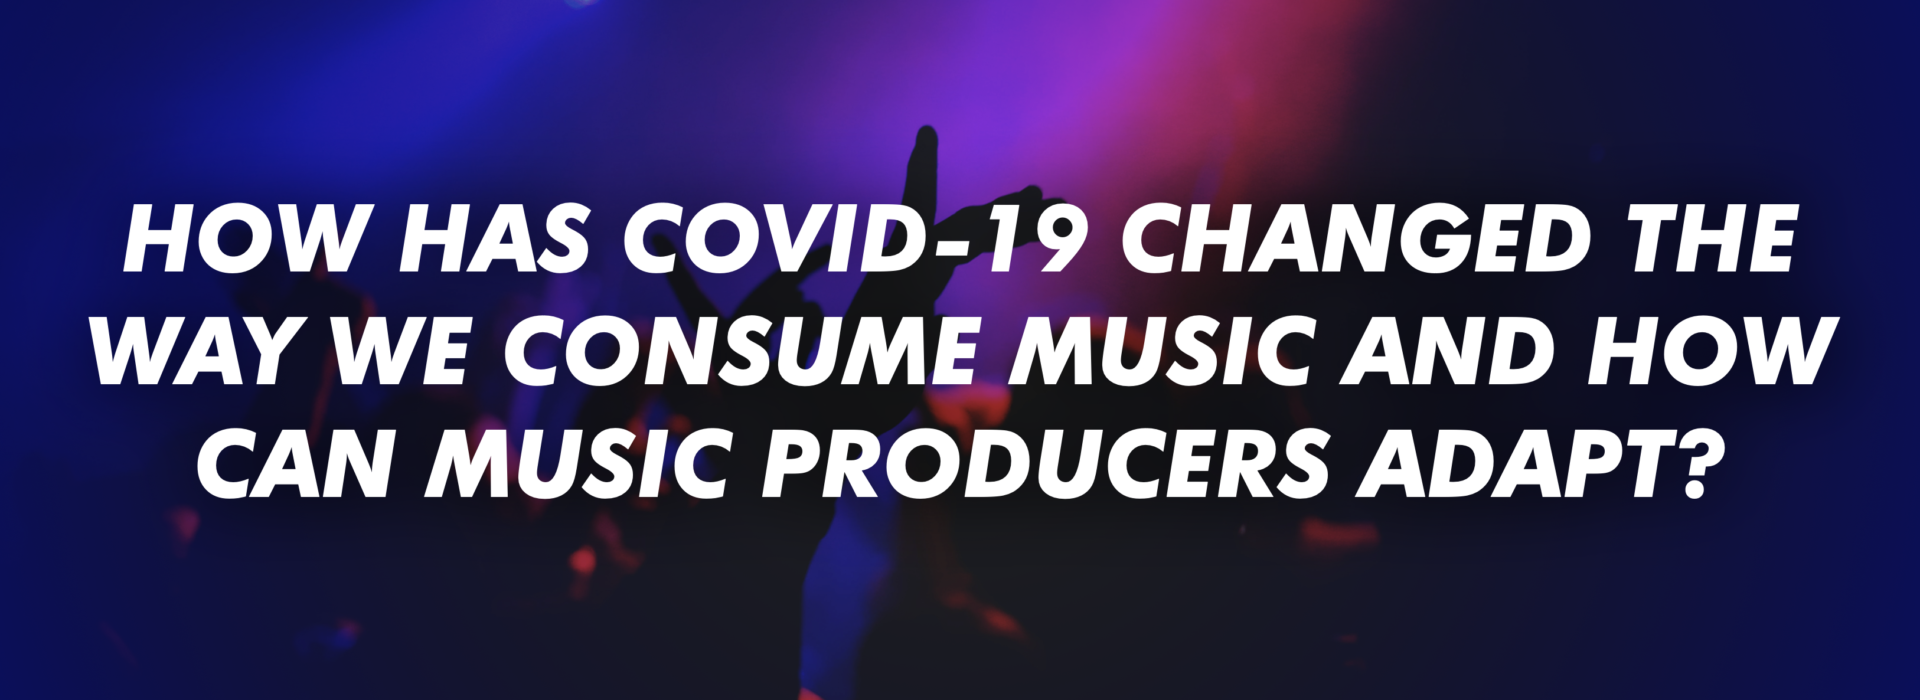 How Has COVID-19 Changed The Way We Consume Music And How Can Music Producers Adapt?